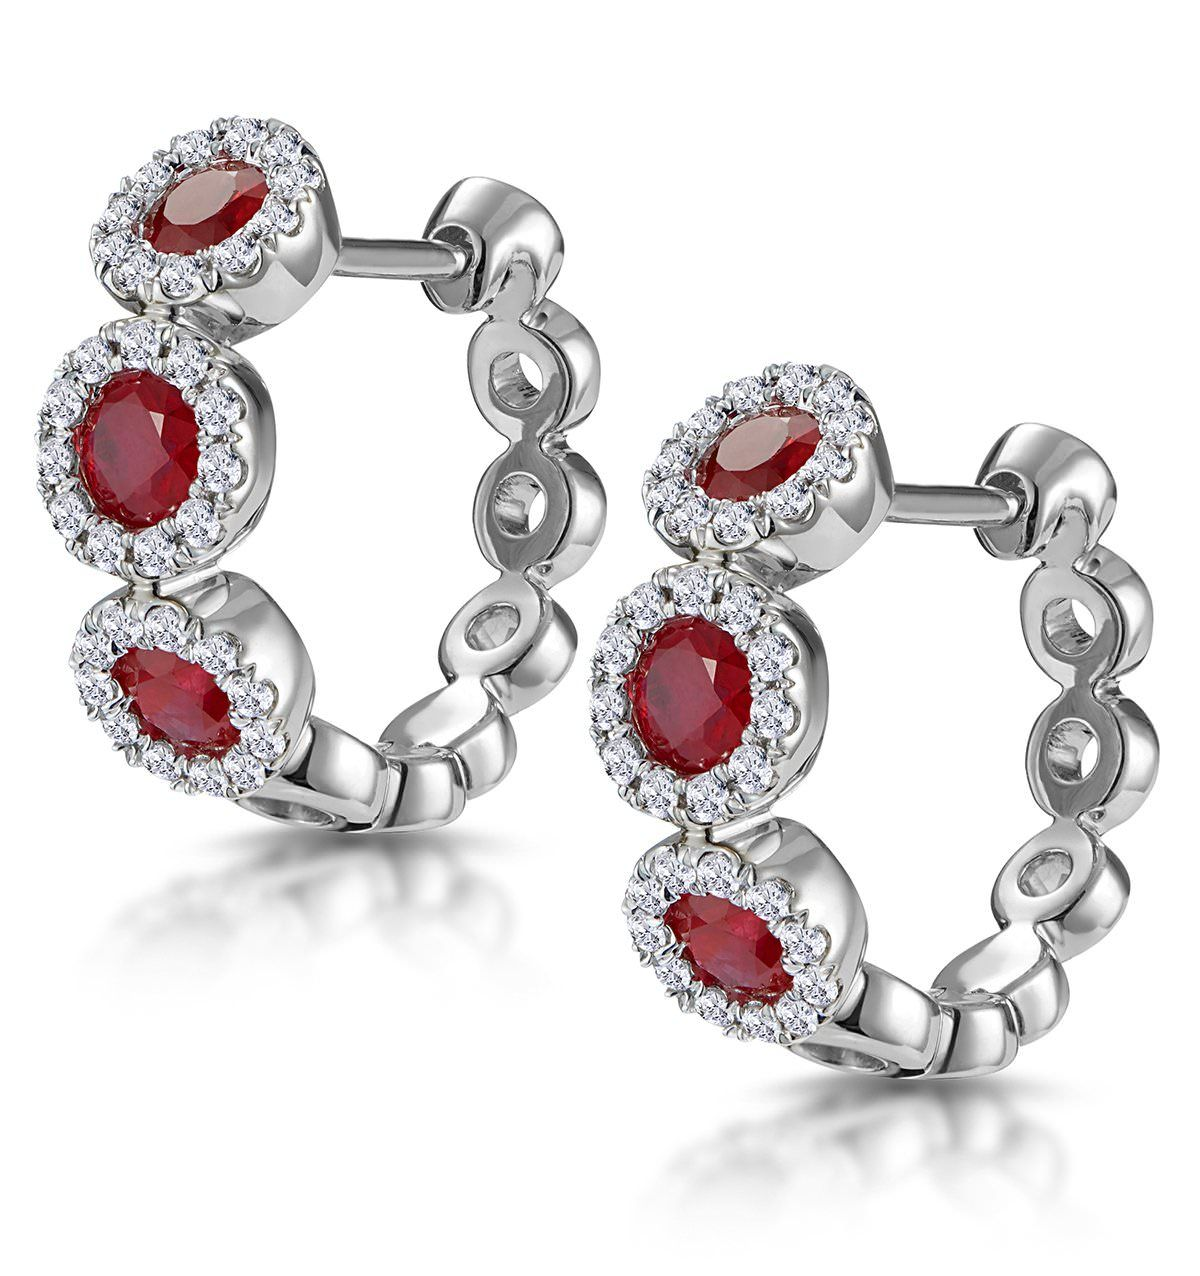 3429f05d05d25 Ruby and Diamond Trilogy Earrings 18K White Gold - Asteria ...